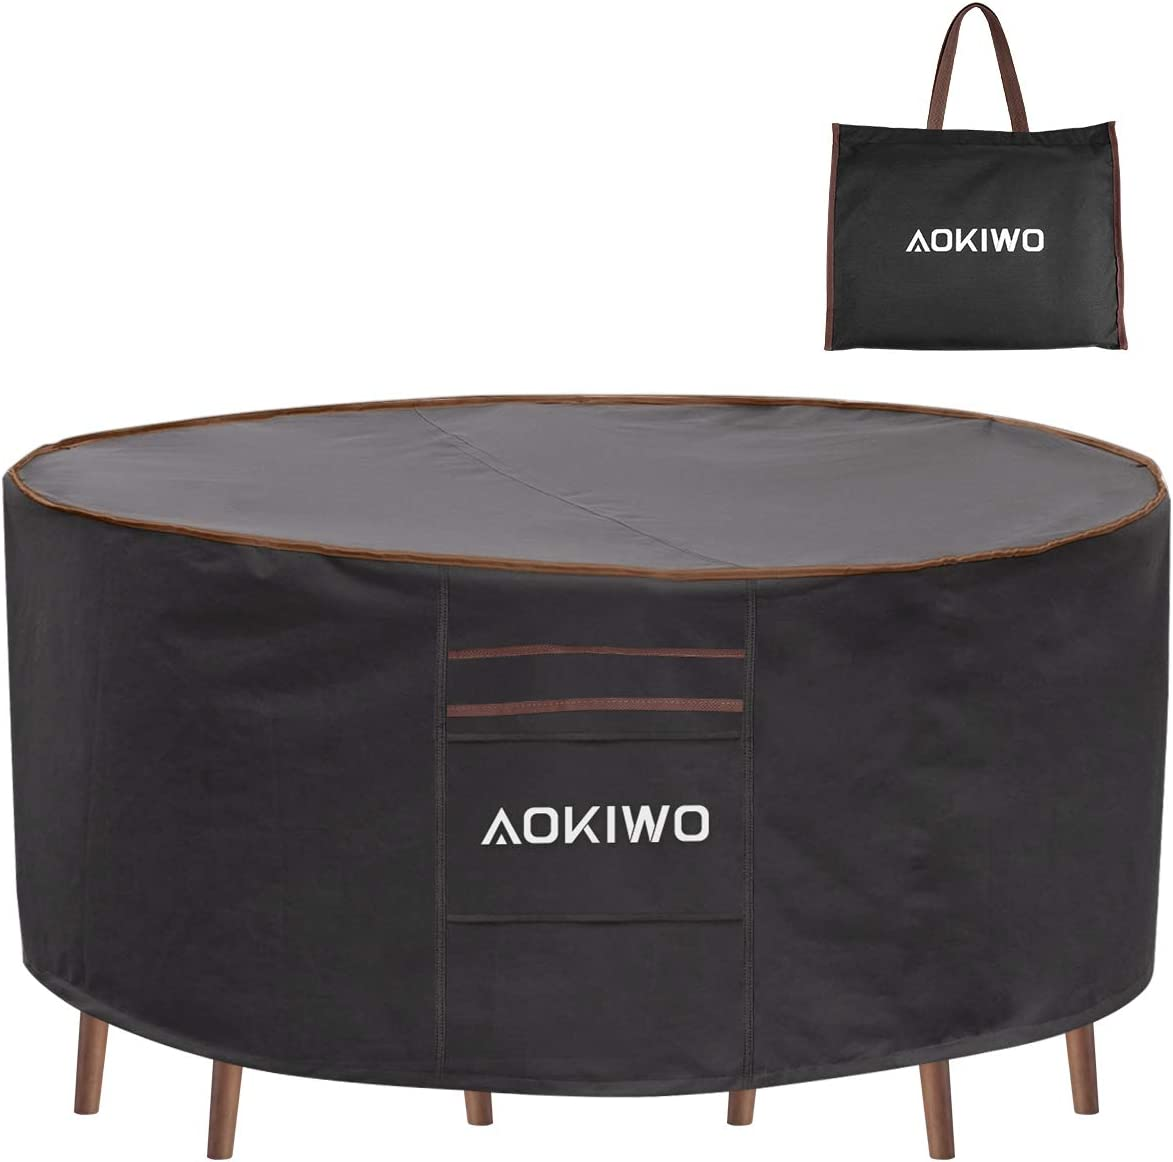 """AOKIWO Outdoor Patio Furniture Covers, 84"""" Round Patio Table and Chair Set Cover Durable Waterproof UV Resistant Anti-Fading Cover 84"""" Dia x 28"""" H"""